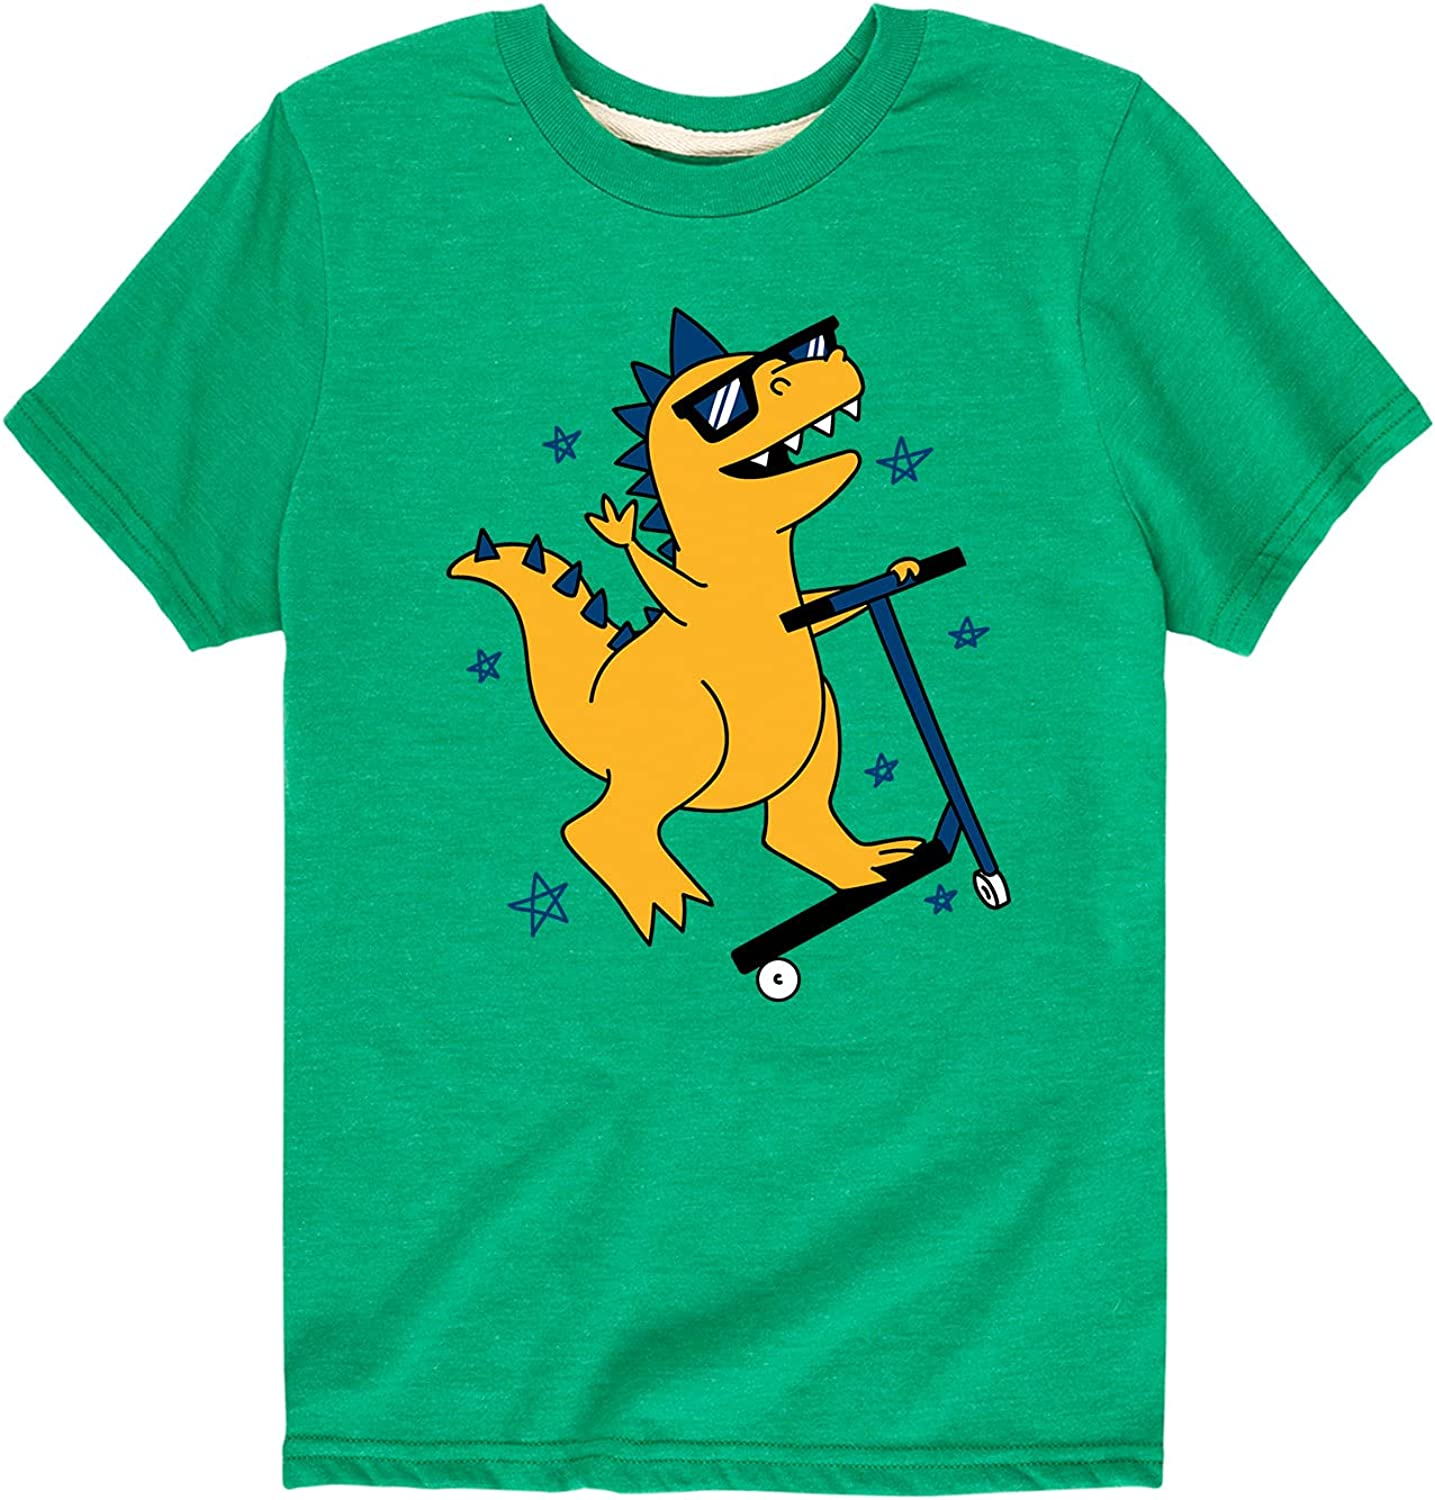 Instant Message Mohawk Scooter Dino - Toddler and Youth Short Sleeve Graphic T-Shirt